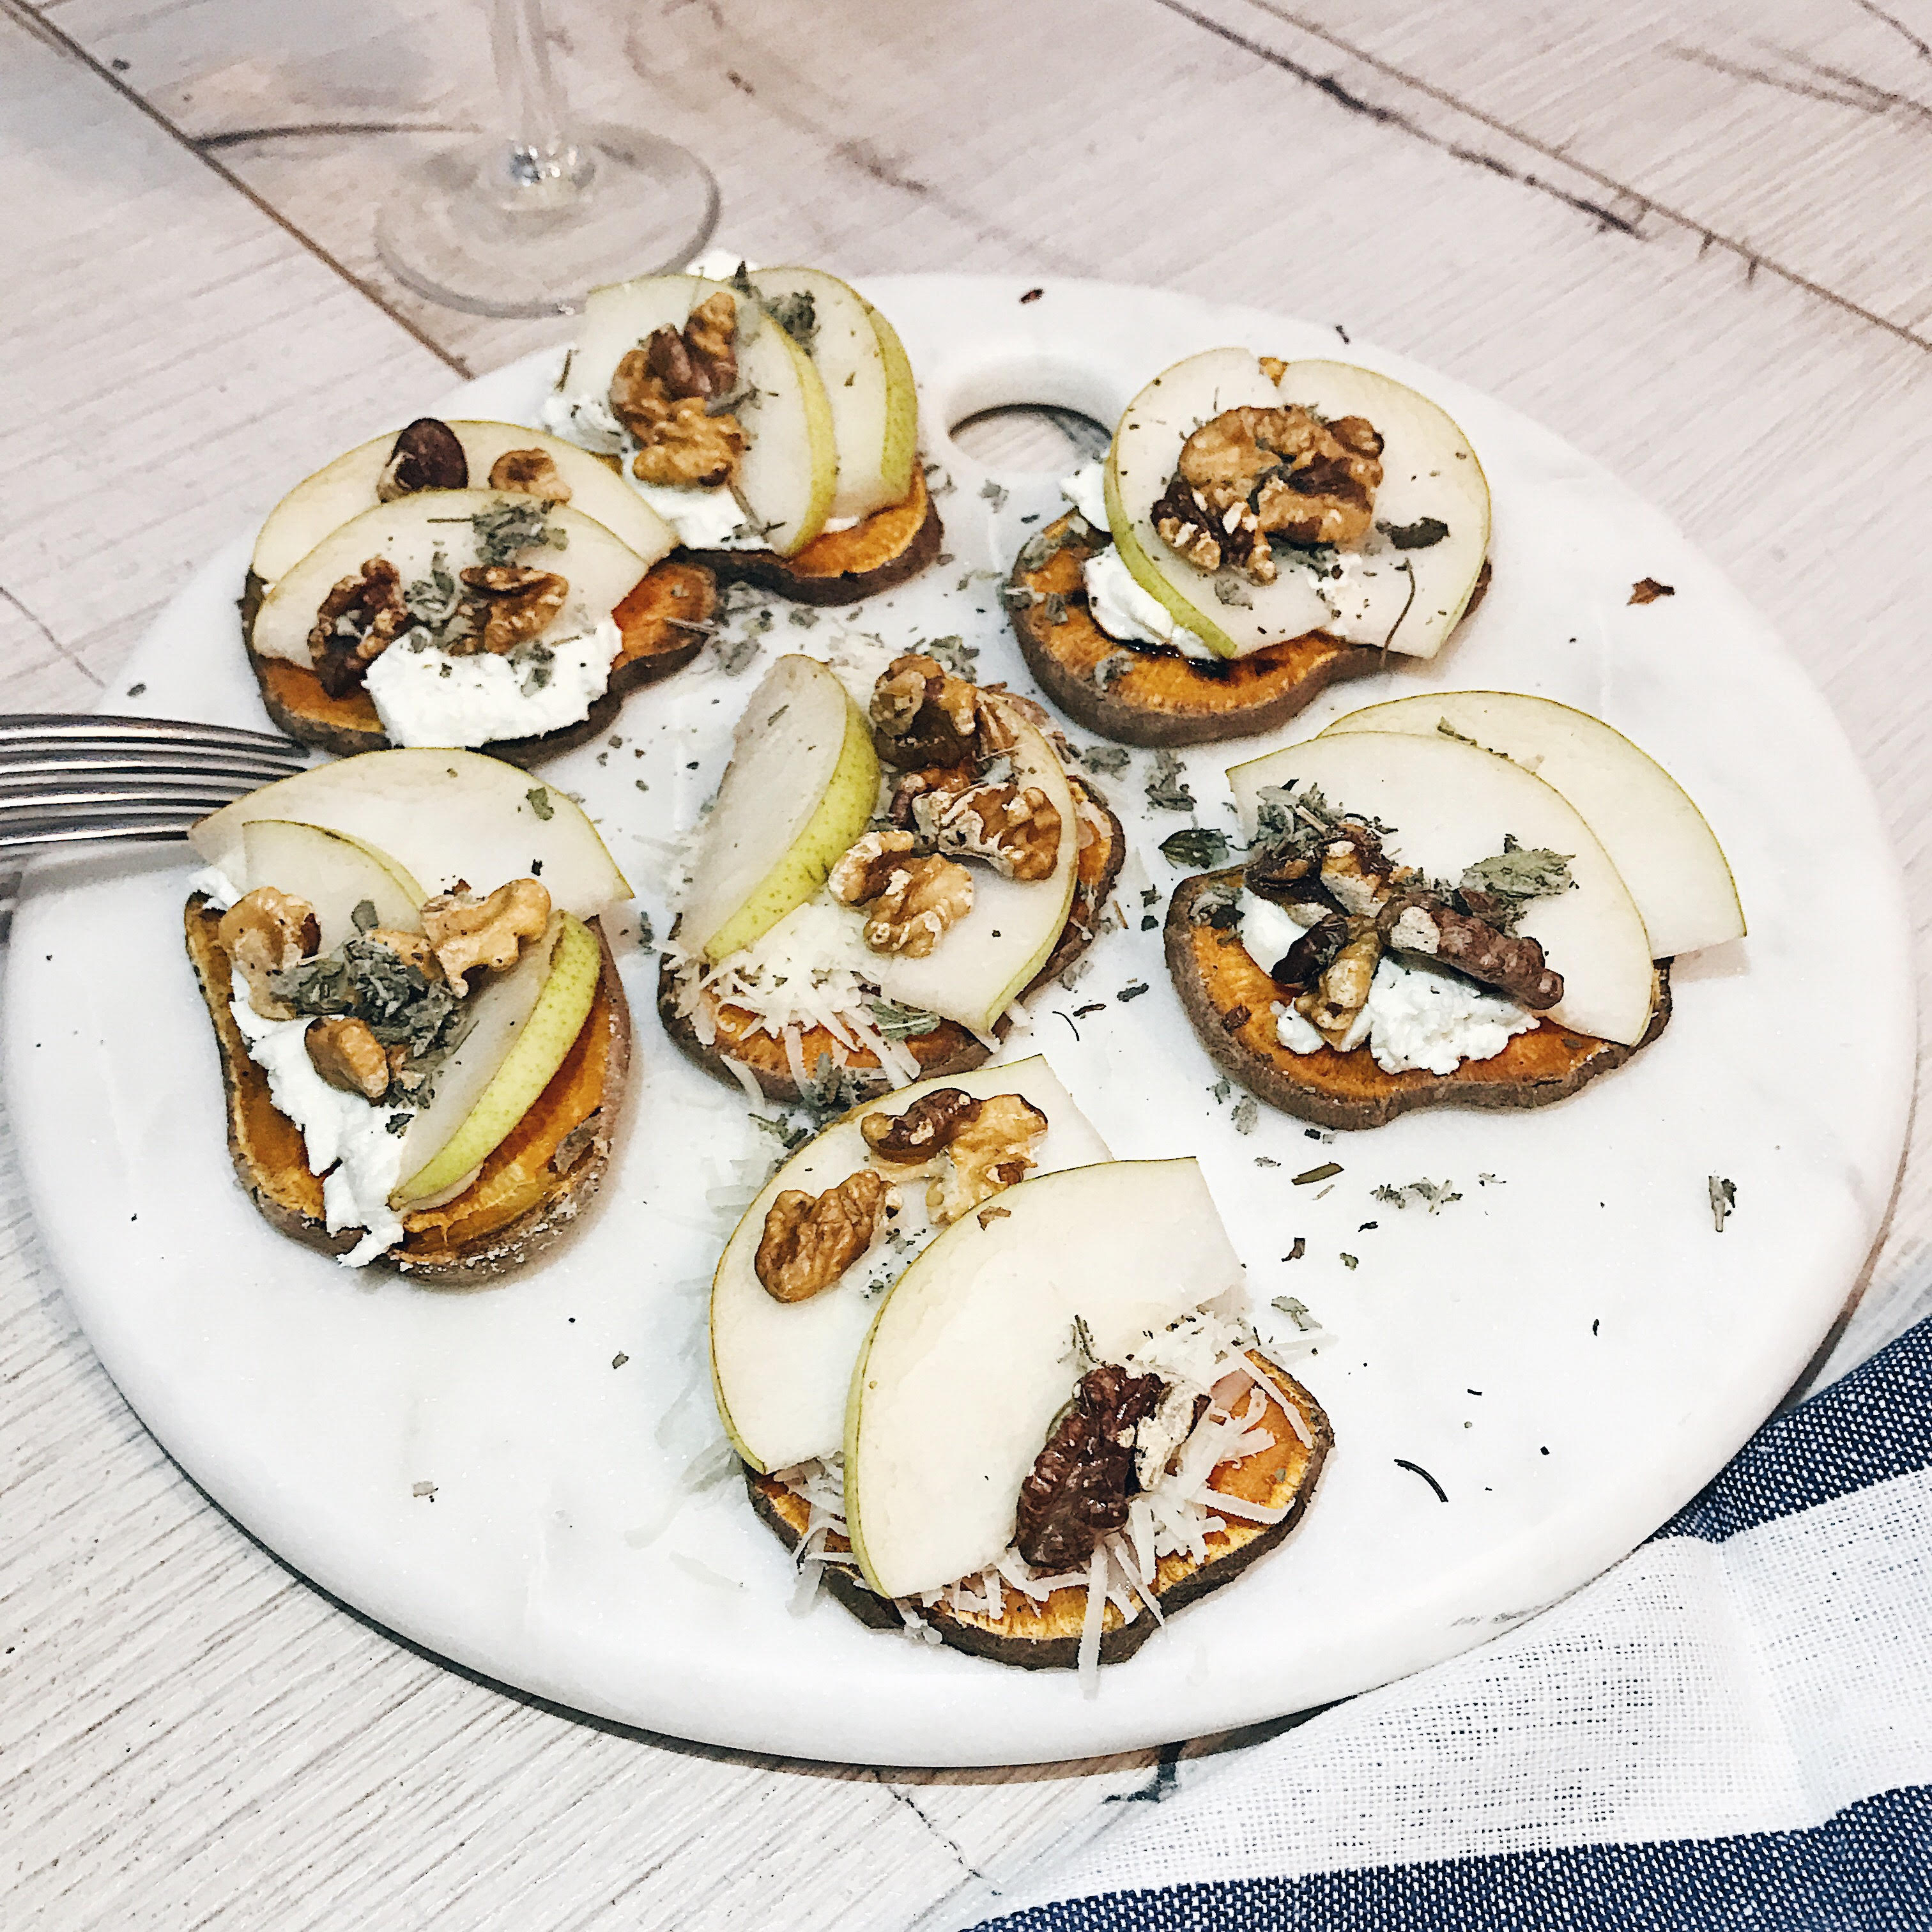 @projectfairytale: Sweet Potato Crostinis with Goat Chees, Gruyere, Pears and Nuts